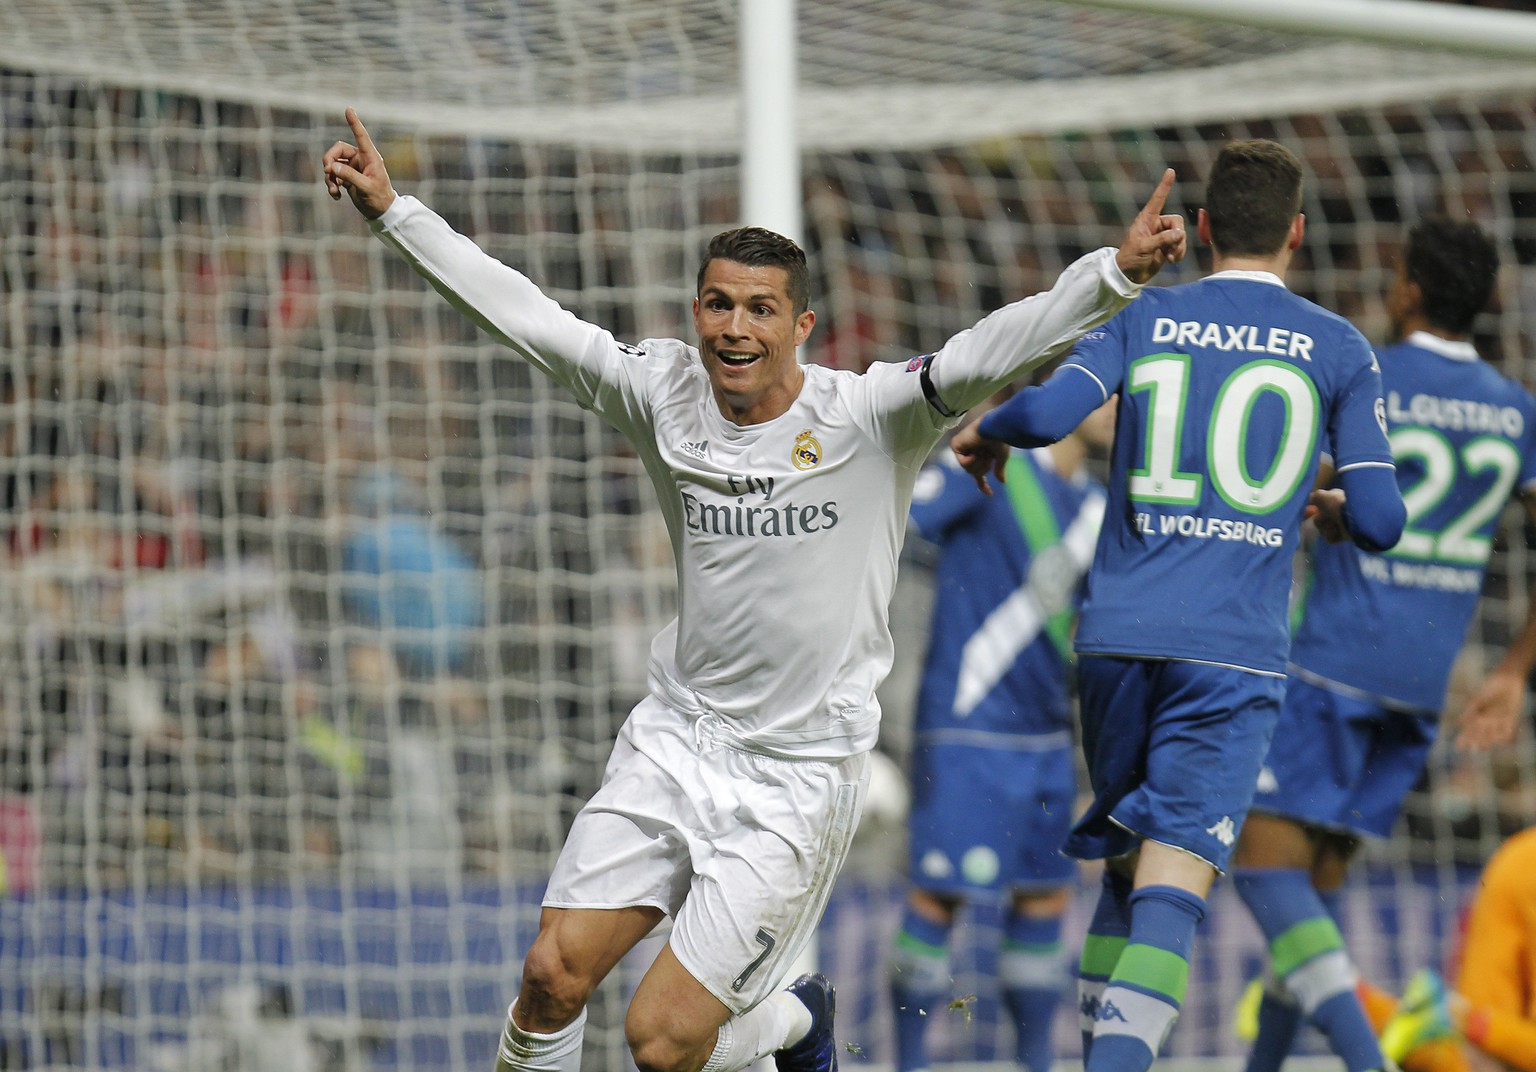 12.04.2016; Madrid; Fussball Champions League - Real Madrid - VfL Wolfsburg; Cristiano Ronaldo (Madrid) bejubelt ein Tor